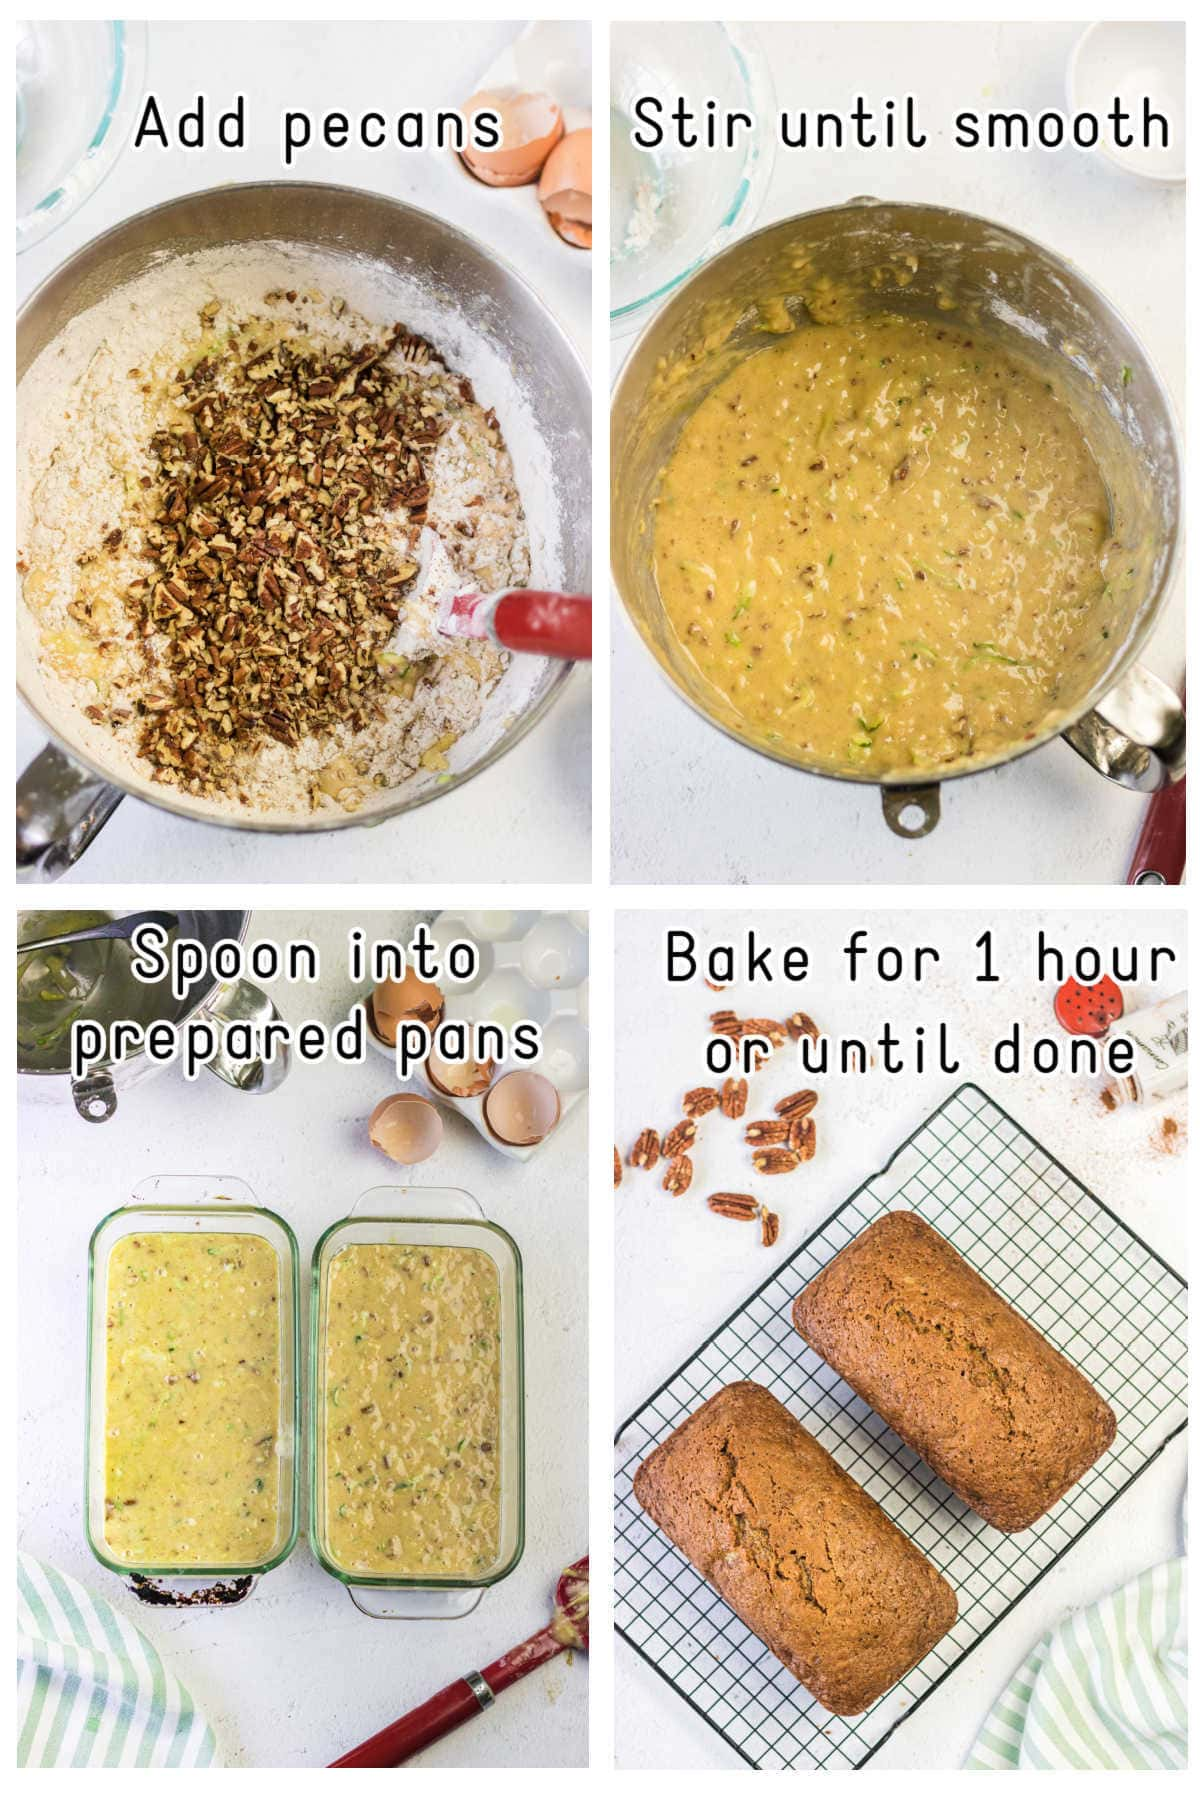 Steps 4 through 8 for making this recipe.